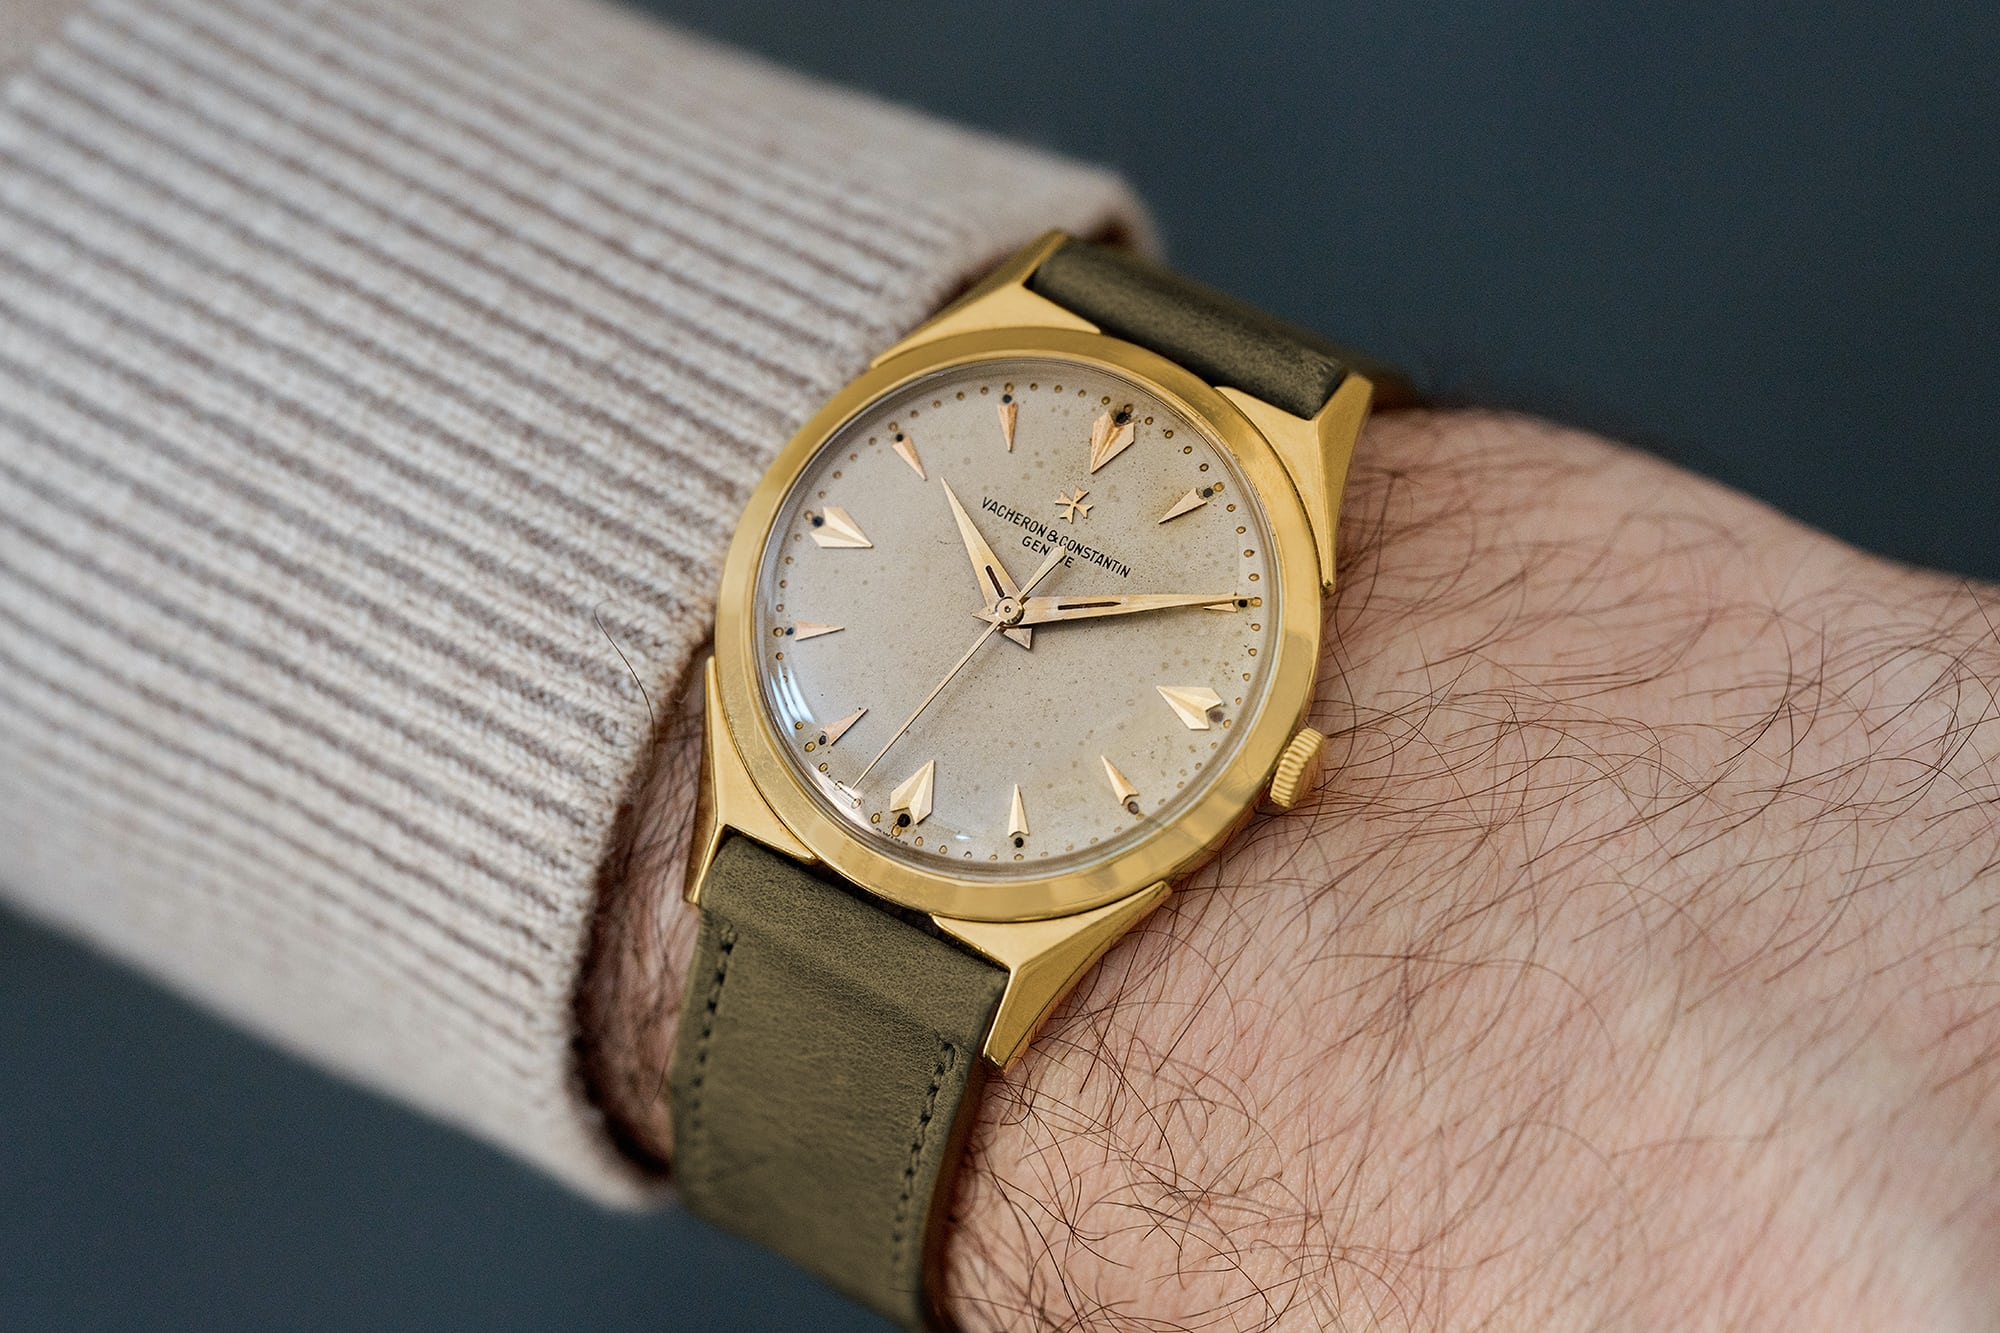 "<p><a href=""https://shop.hodinkee.com/products/chronometre-royal-18k-1"" rel=""noopener"" target=""_blank""><u>1950s Vacheron Constantin Dress Watch In 18k Yellow Gold</u></a></p>"